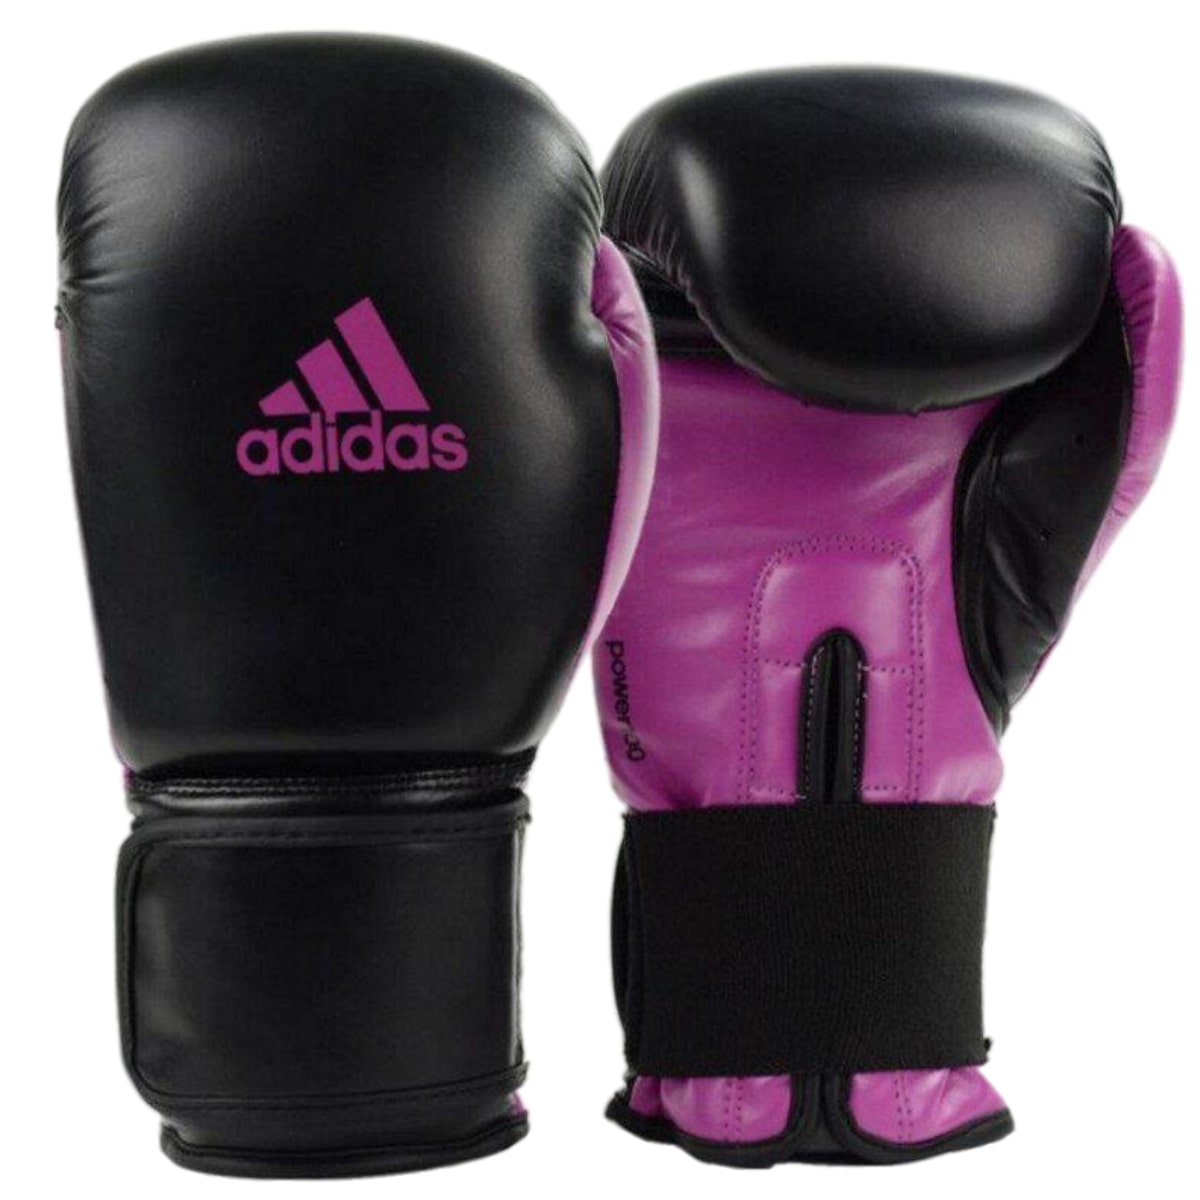 Luva Boxe Adidas Power 100 Colors - Preto e Rosa